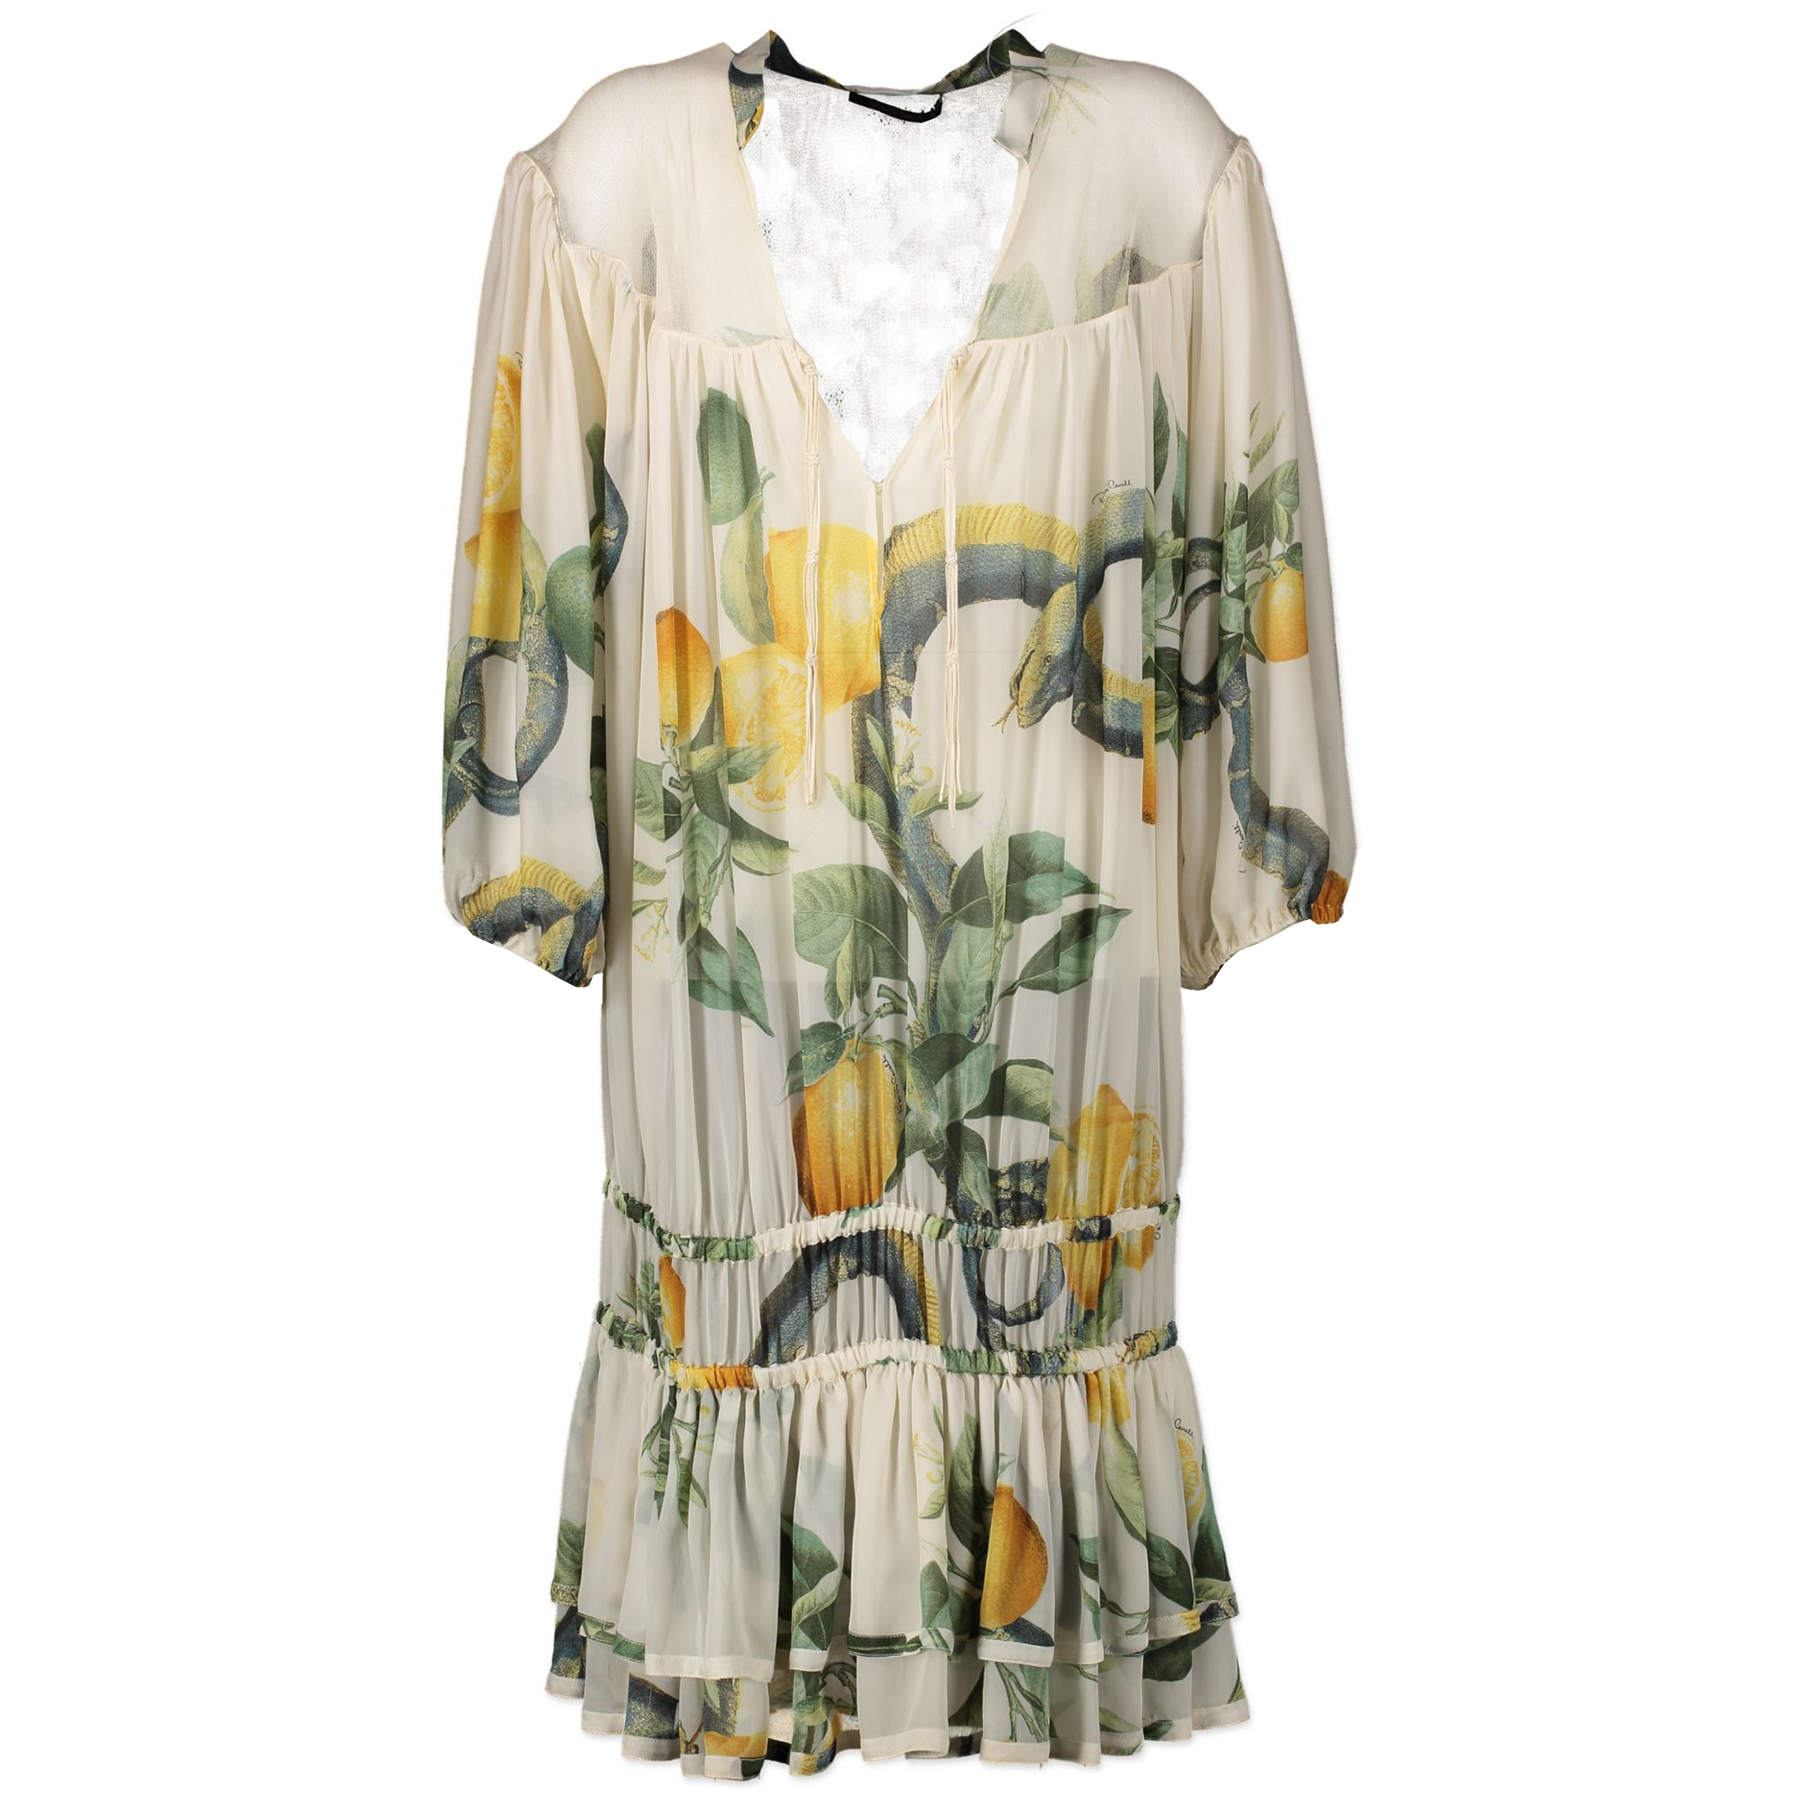 Authentieke tweedehands vintage Roberto Cavalli Lemon Dress - Size S koop online webshop LabelLOV